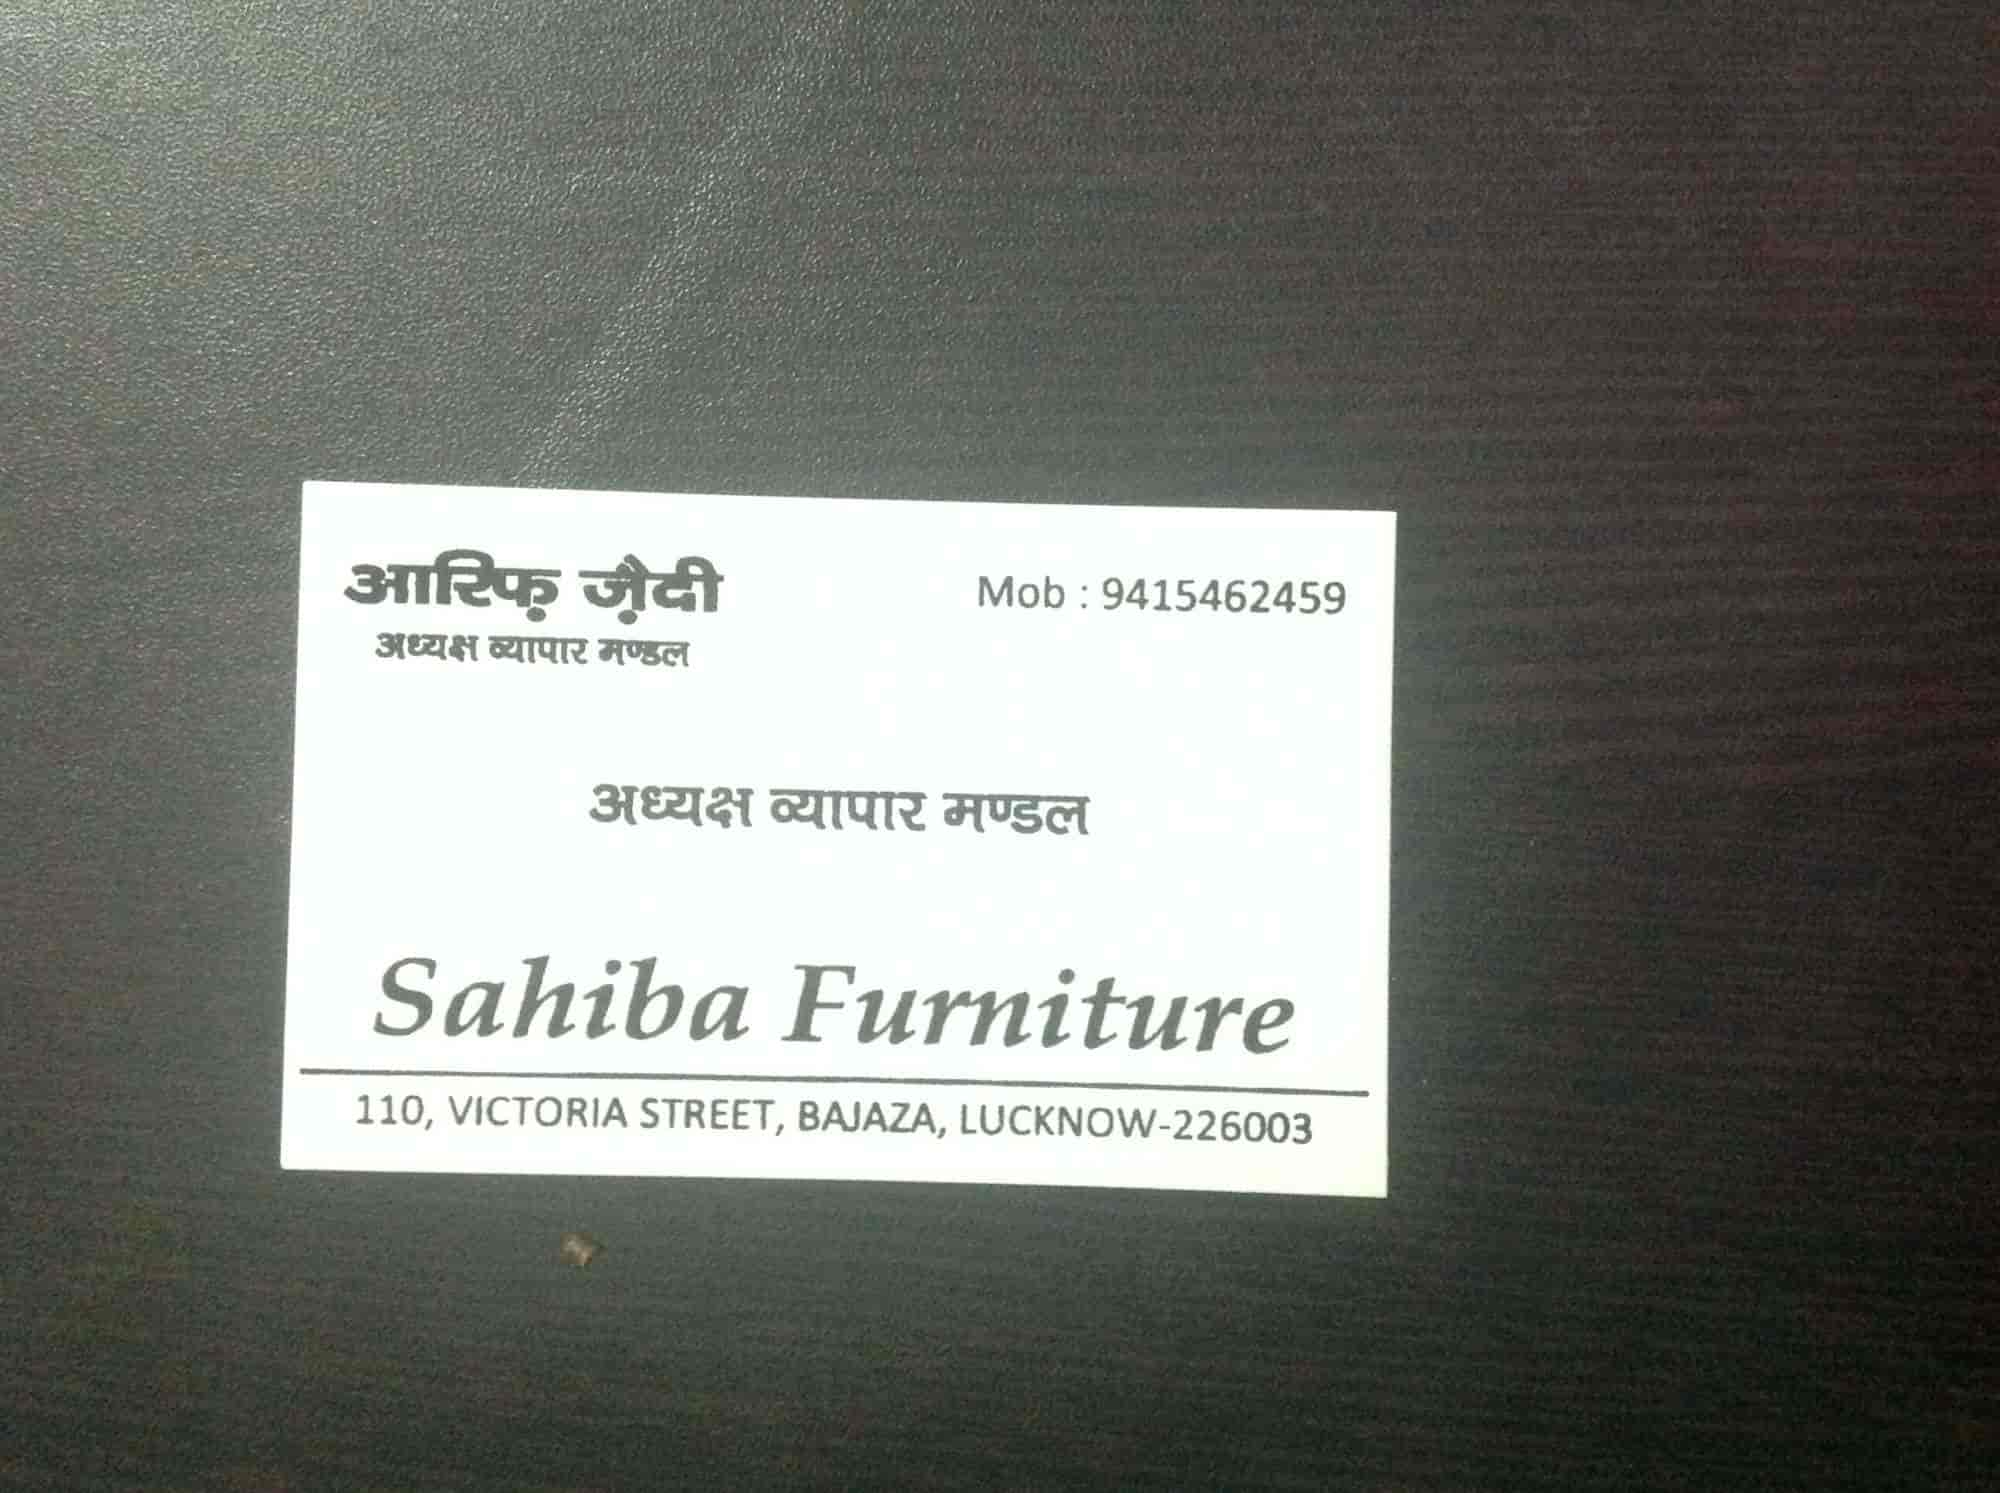 Sahiba Furniture, Chowk - Furniture Dealers in Lucknow - Justdial